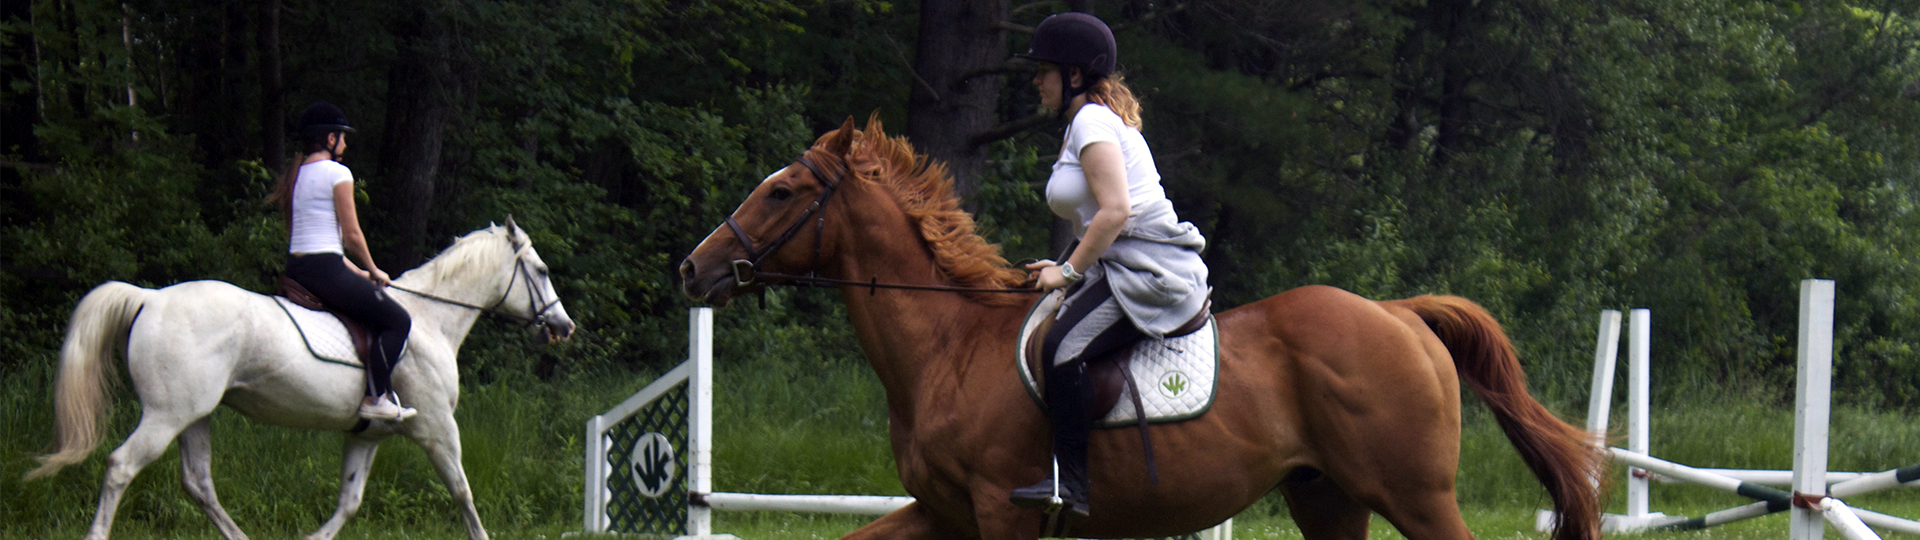 If you love Horses and Horse Riding, this is the perfect summer job for you!